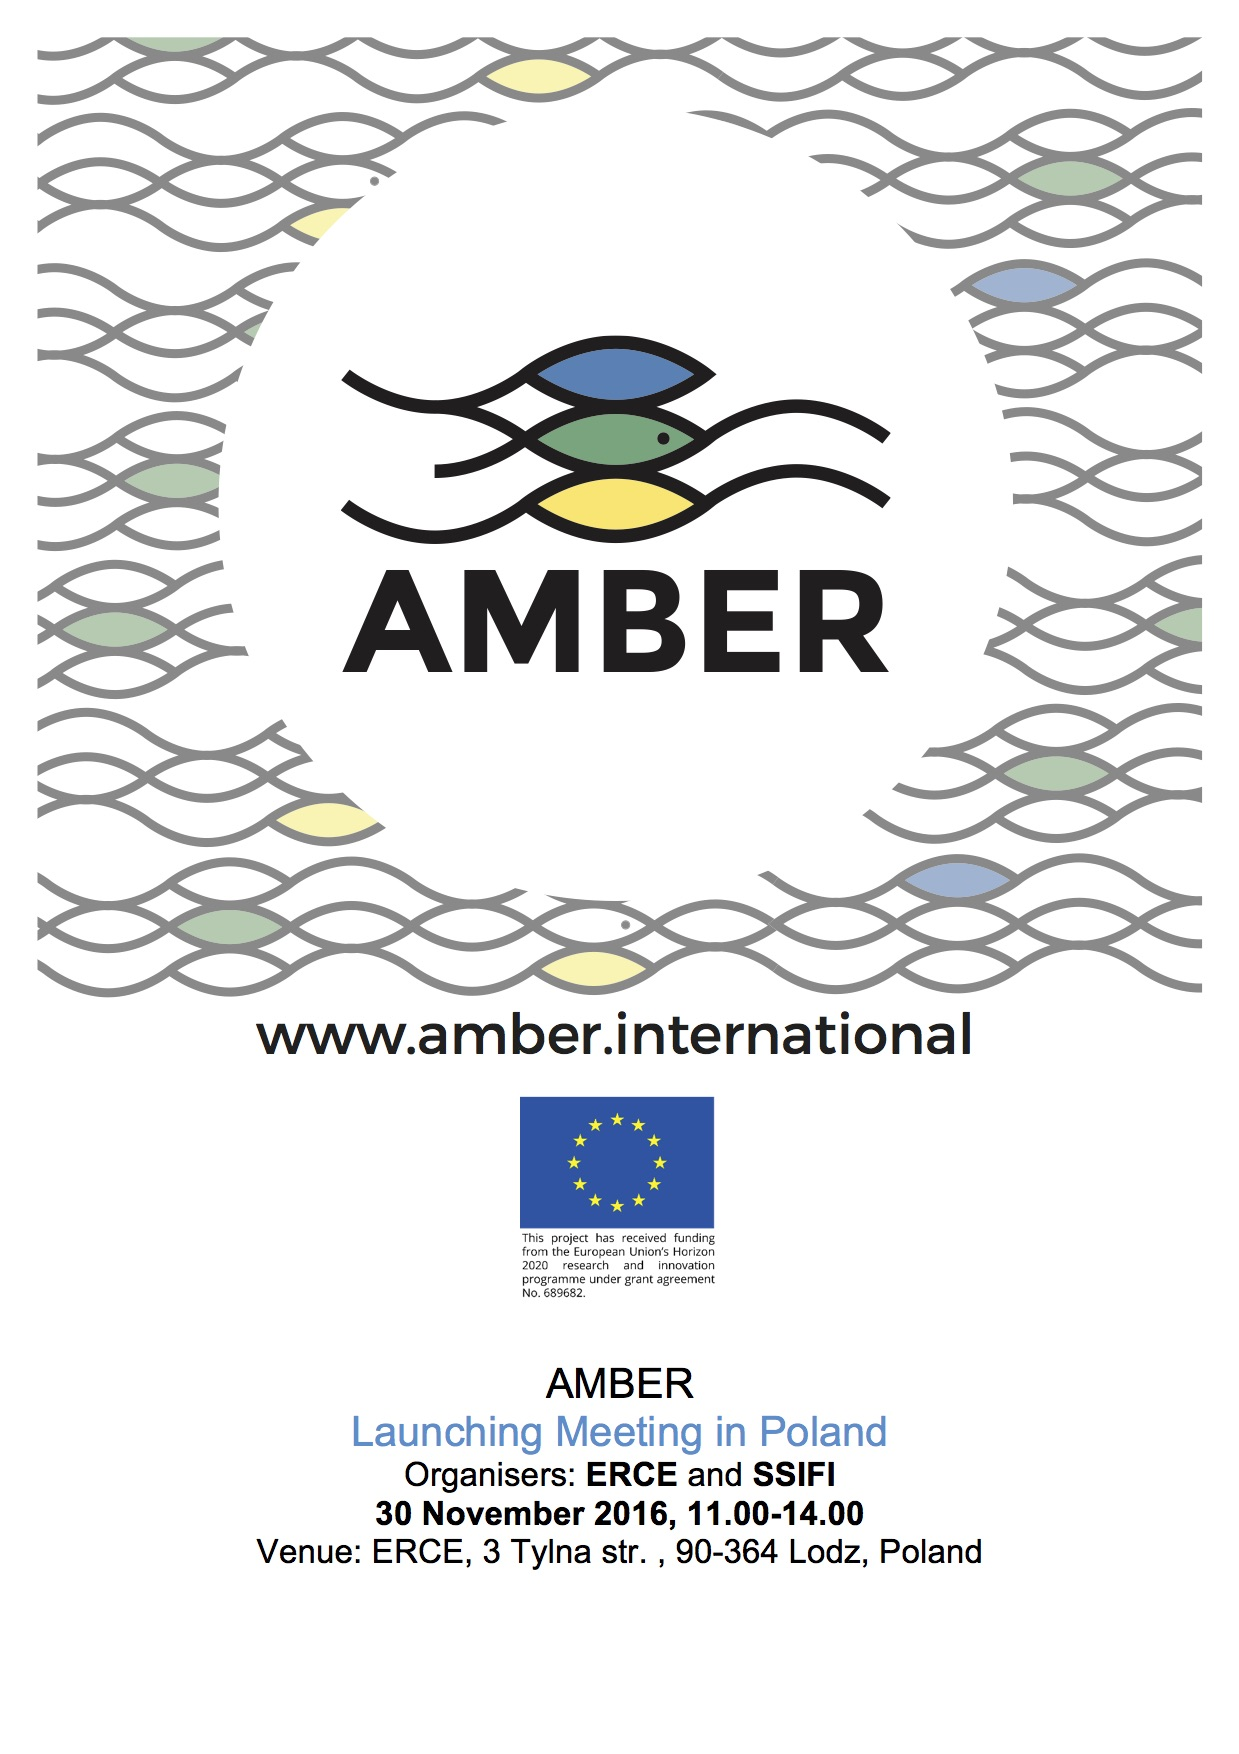 AMBER_Launching Meeting in Poland_on web